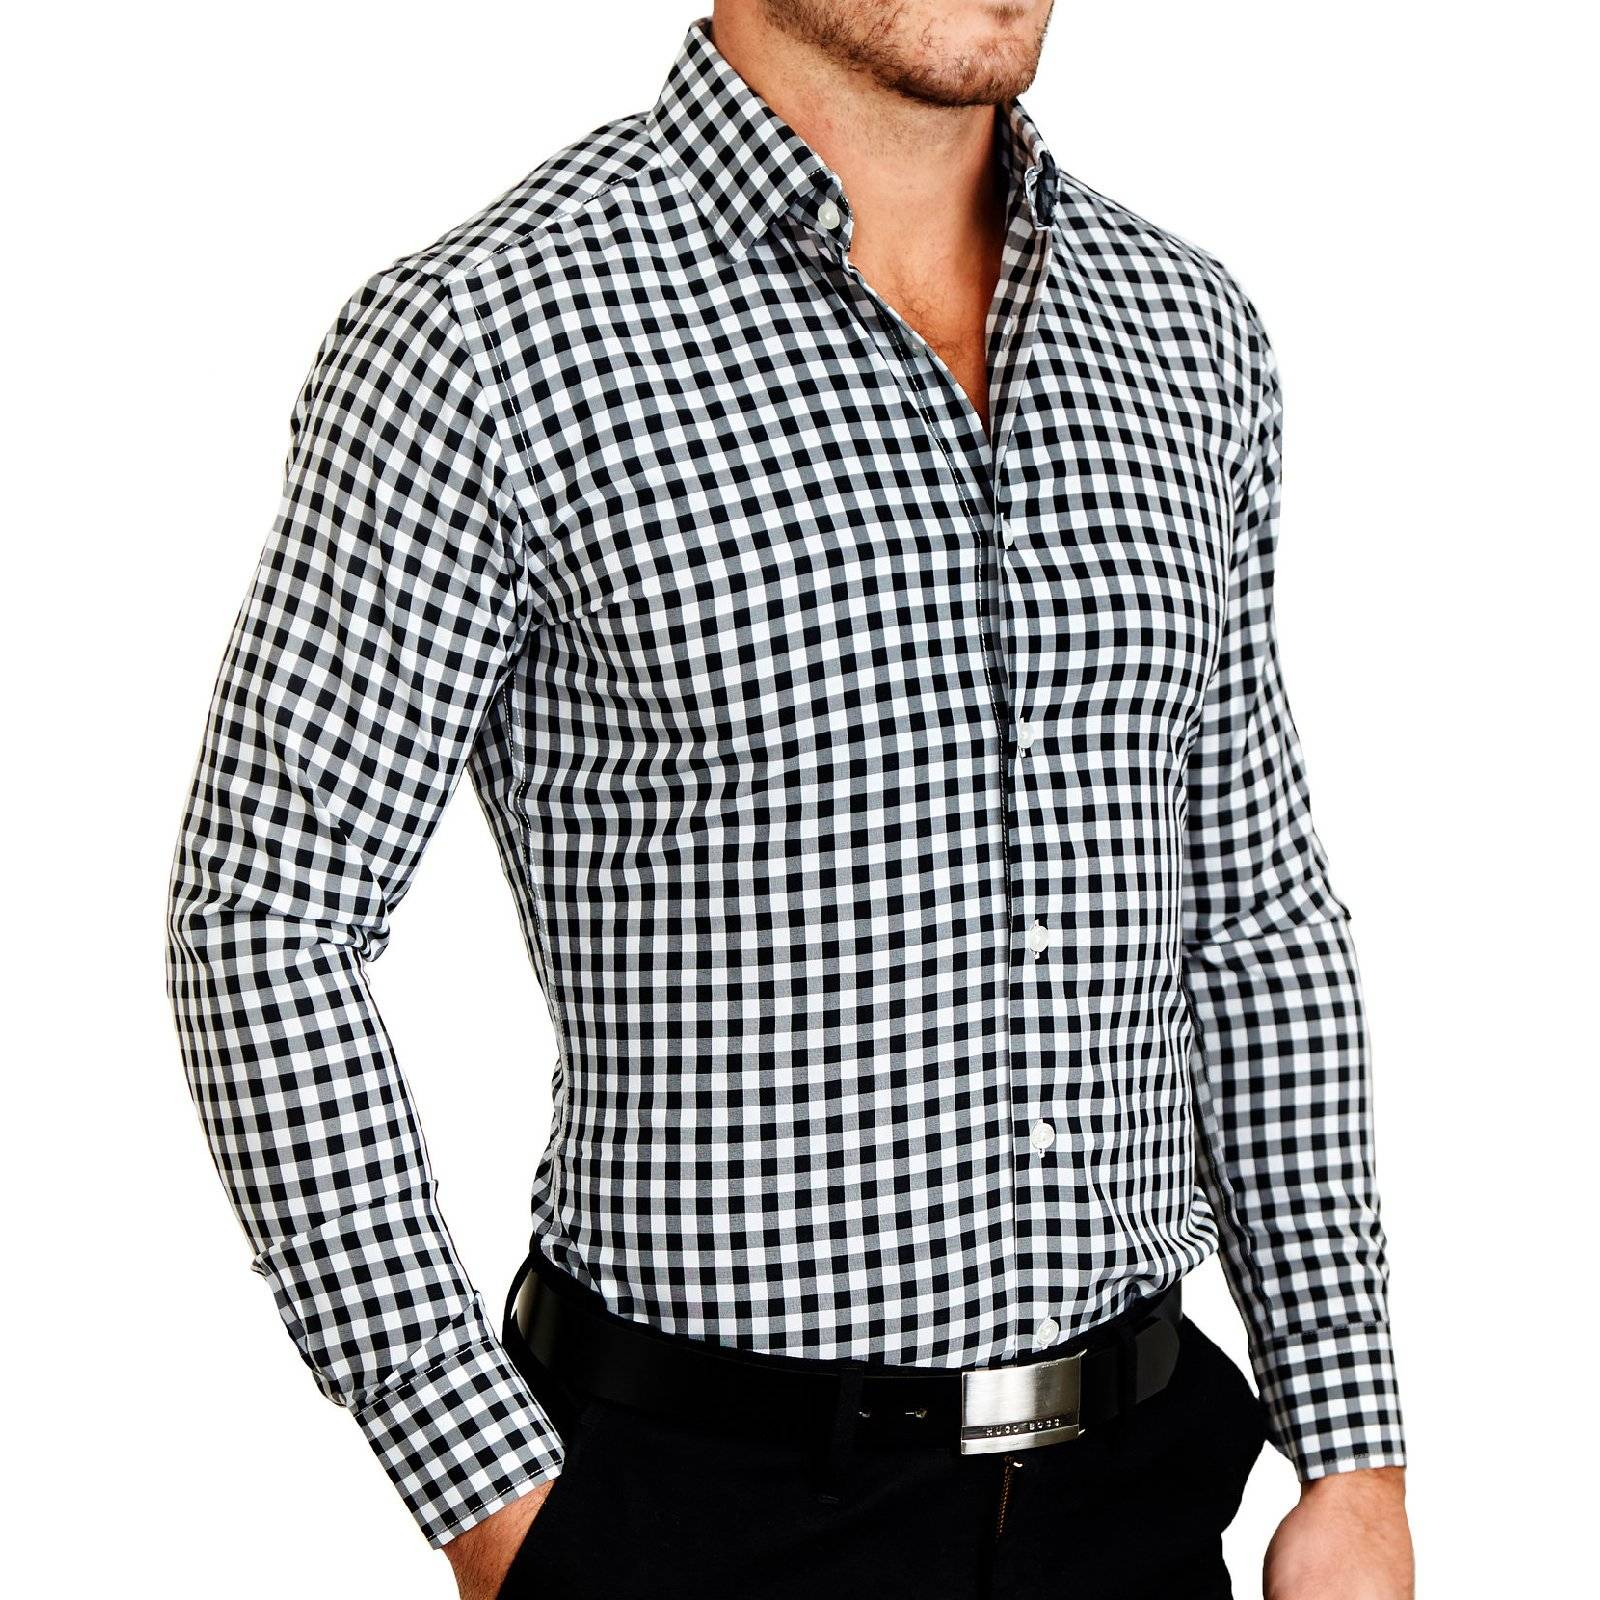 State And Liberty Athletic Fit Dress Shirts